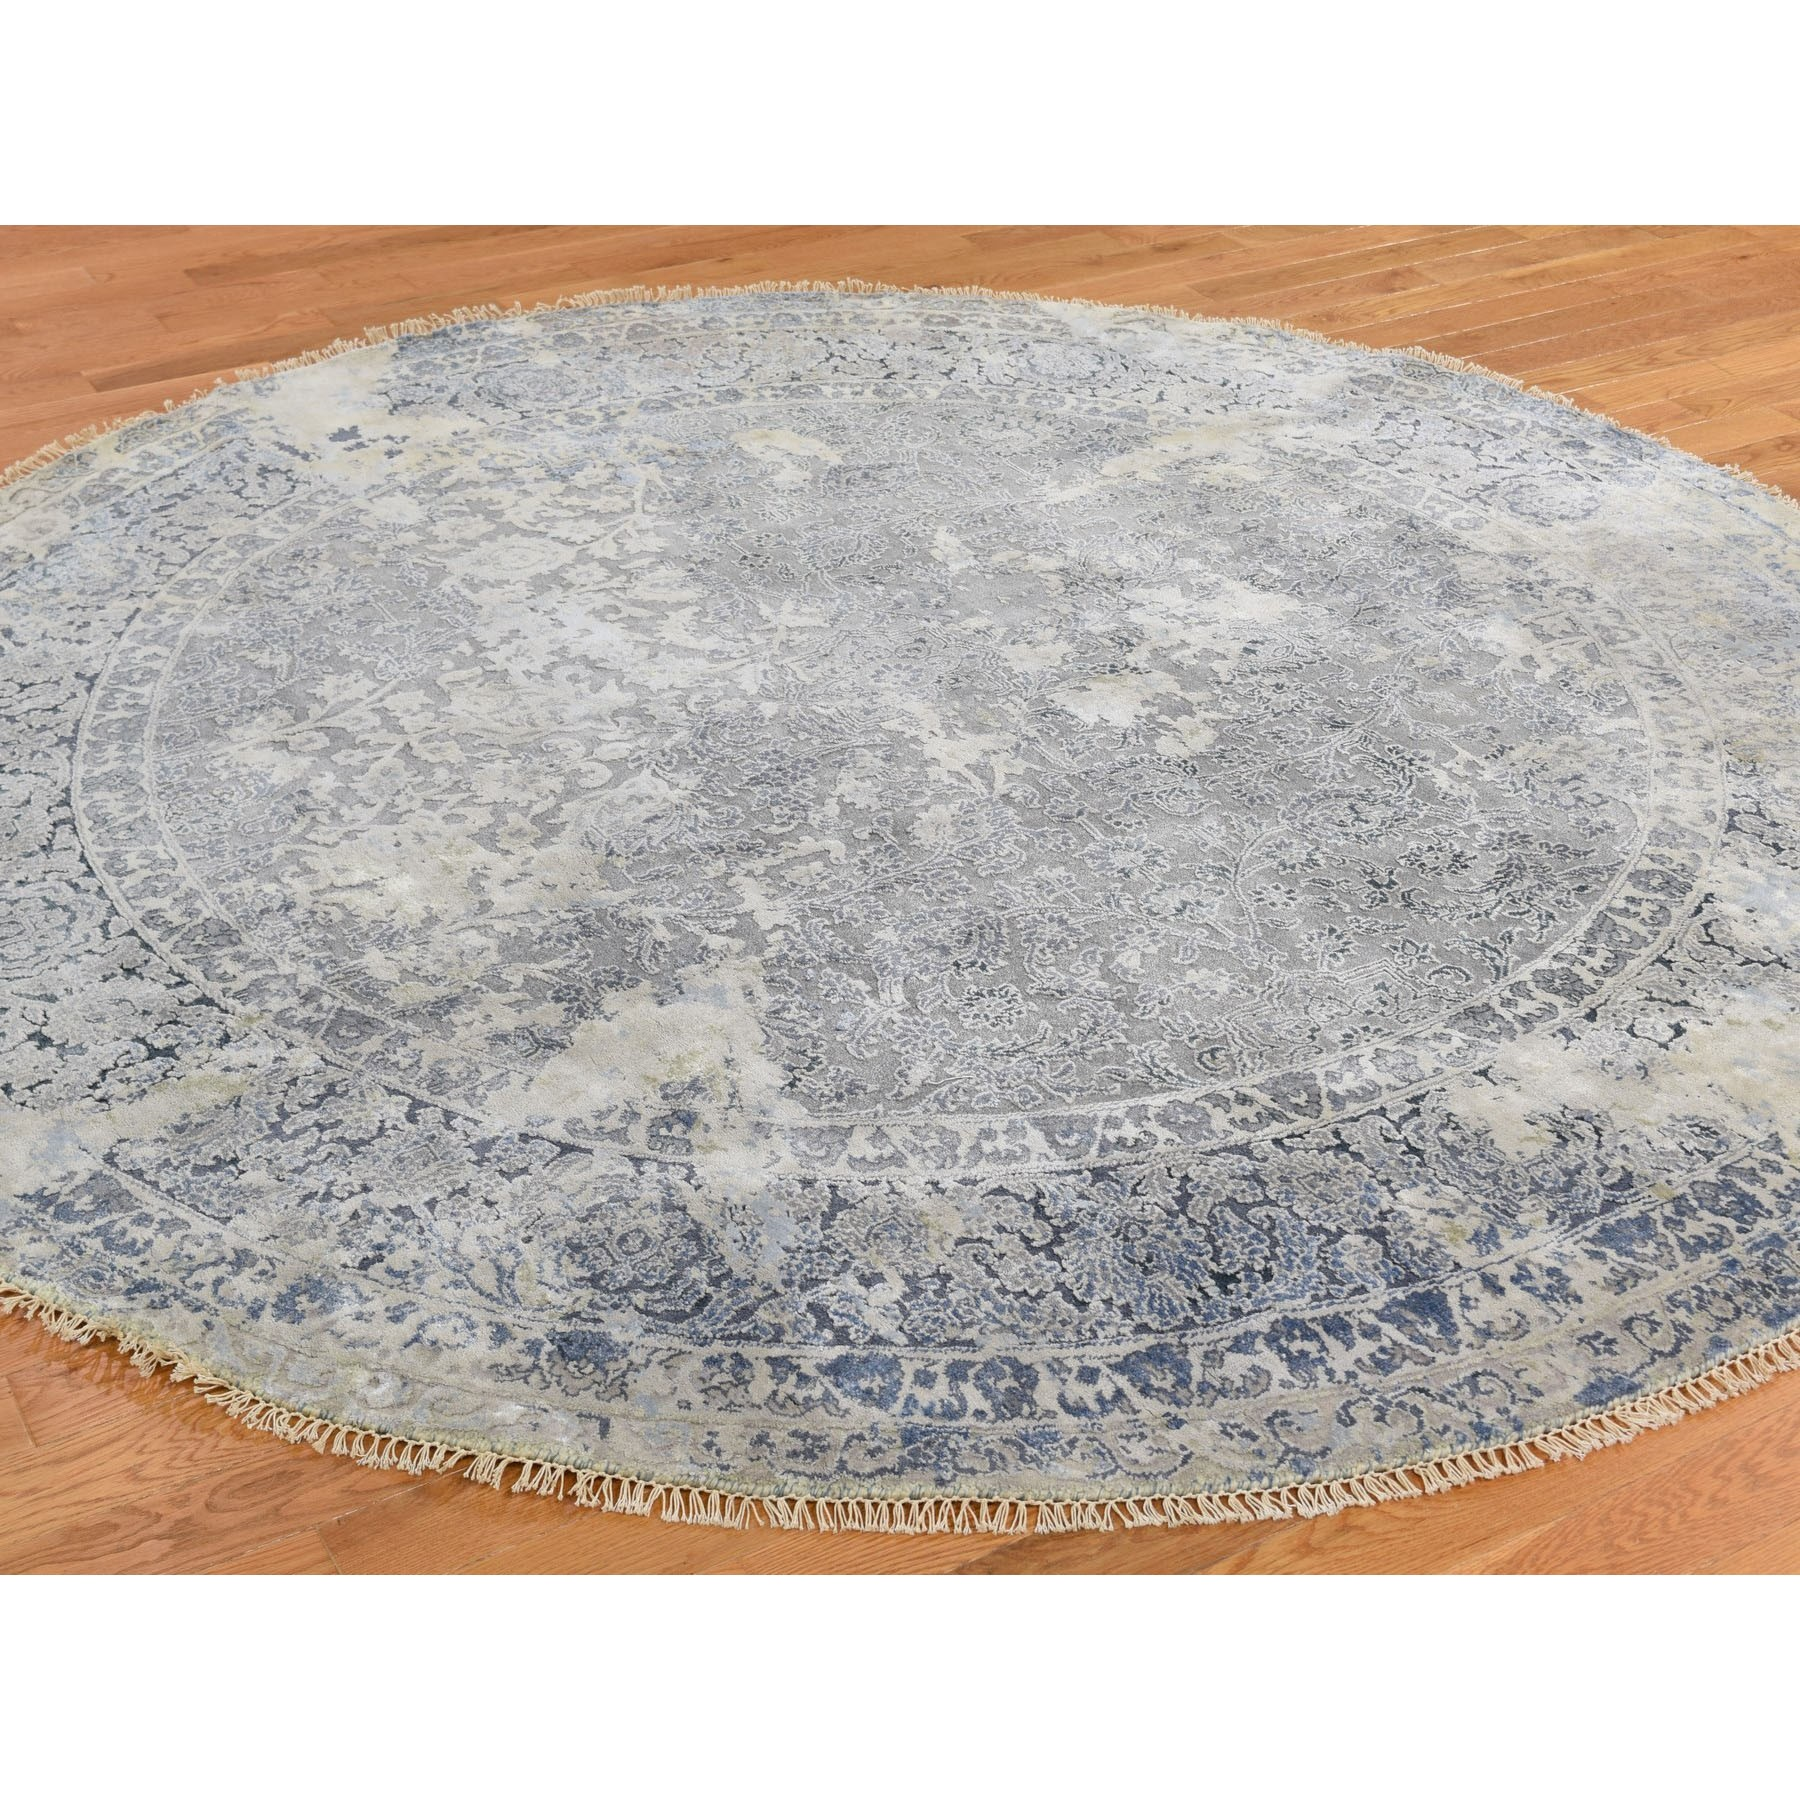 10'x10' Round Broken Persian Design With Pure Silk Hand Knotted Oriental Rug